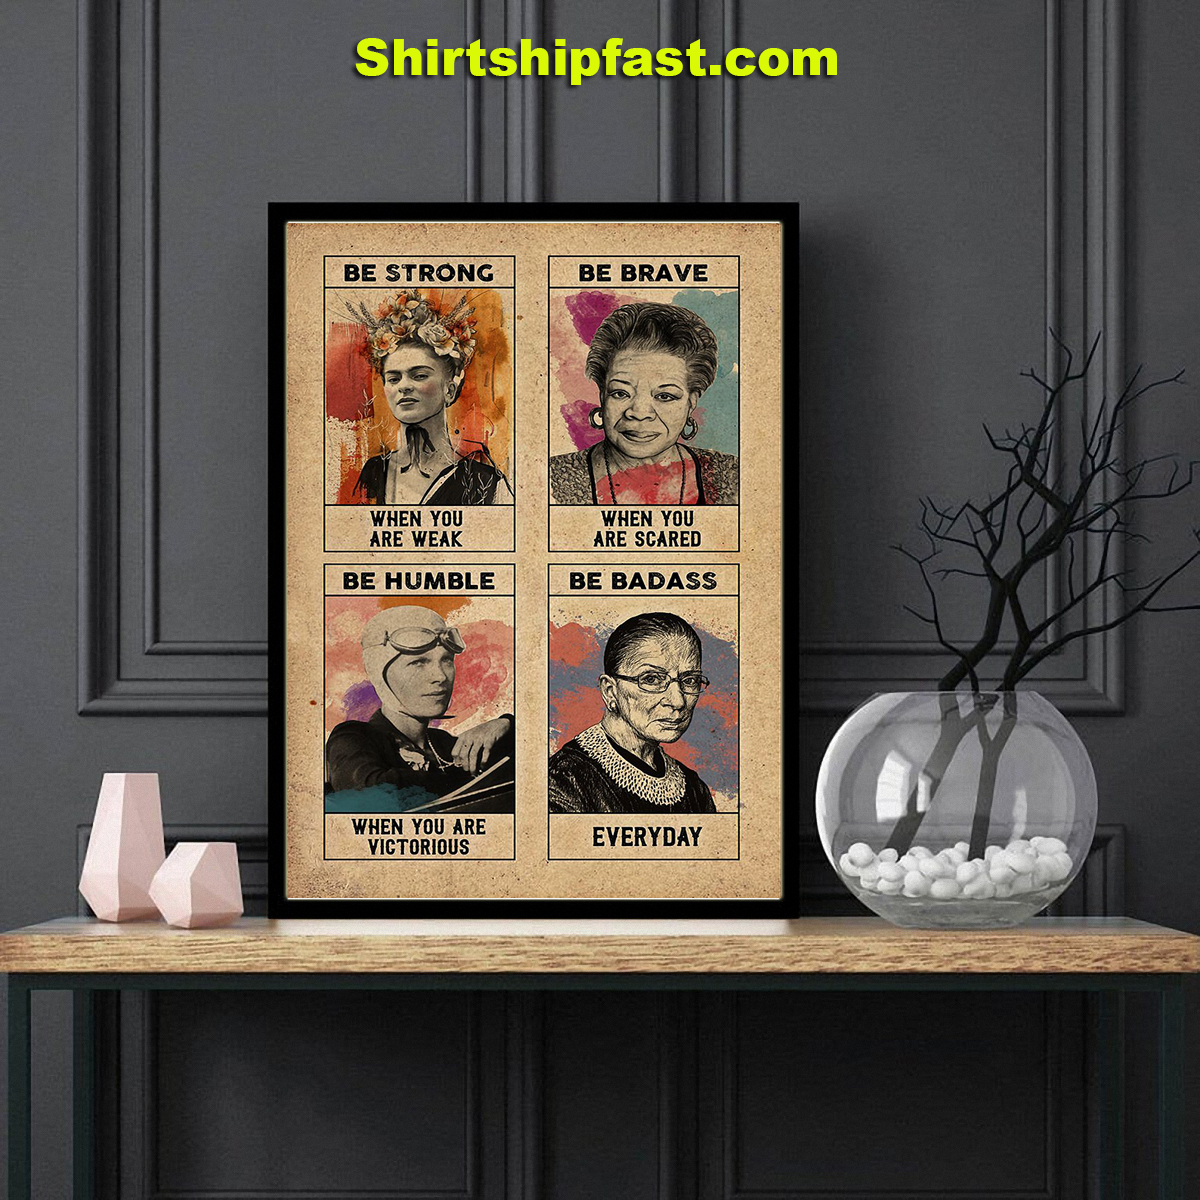 Feminist Frida kahlo be strong poster - Picture 3